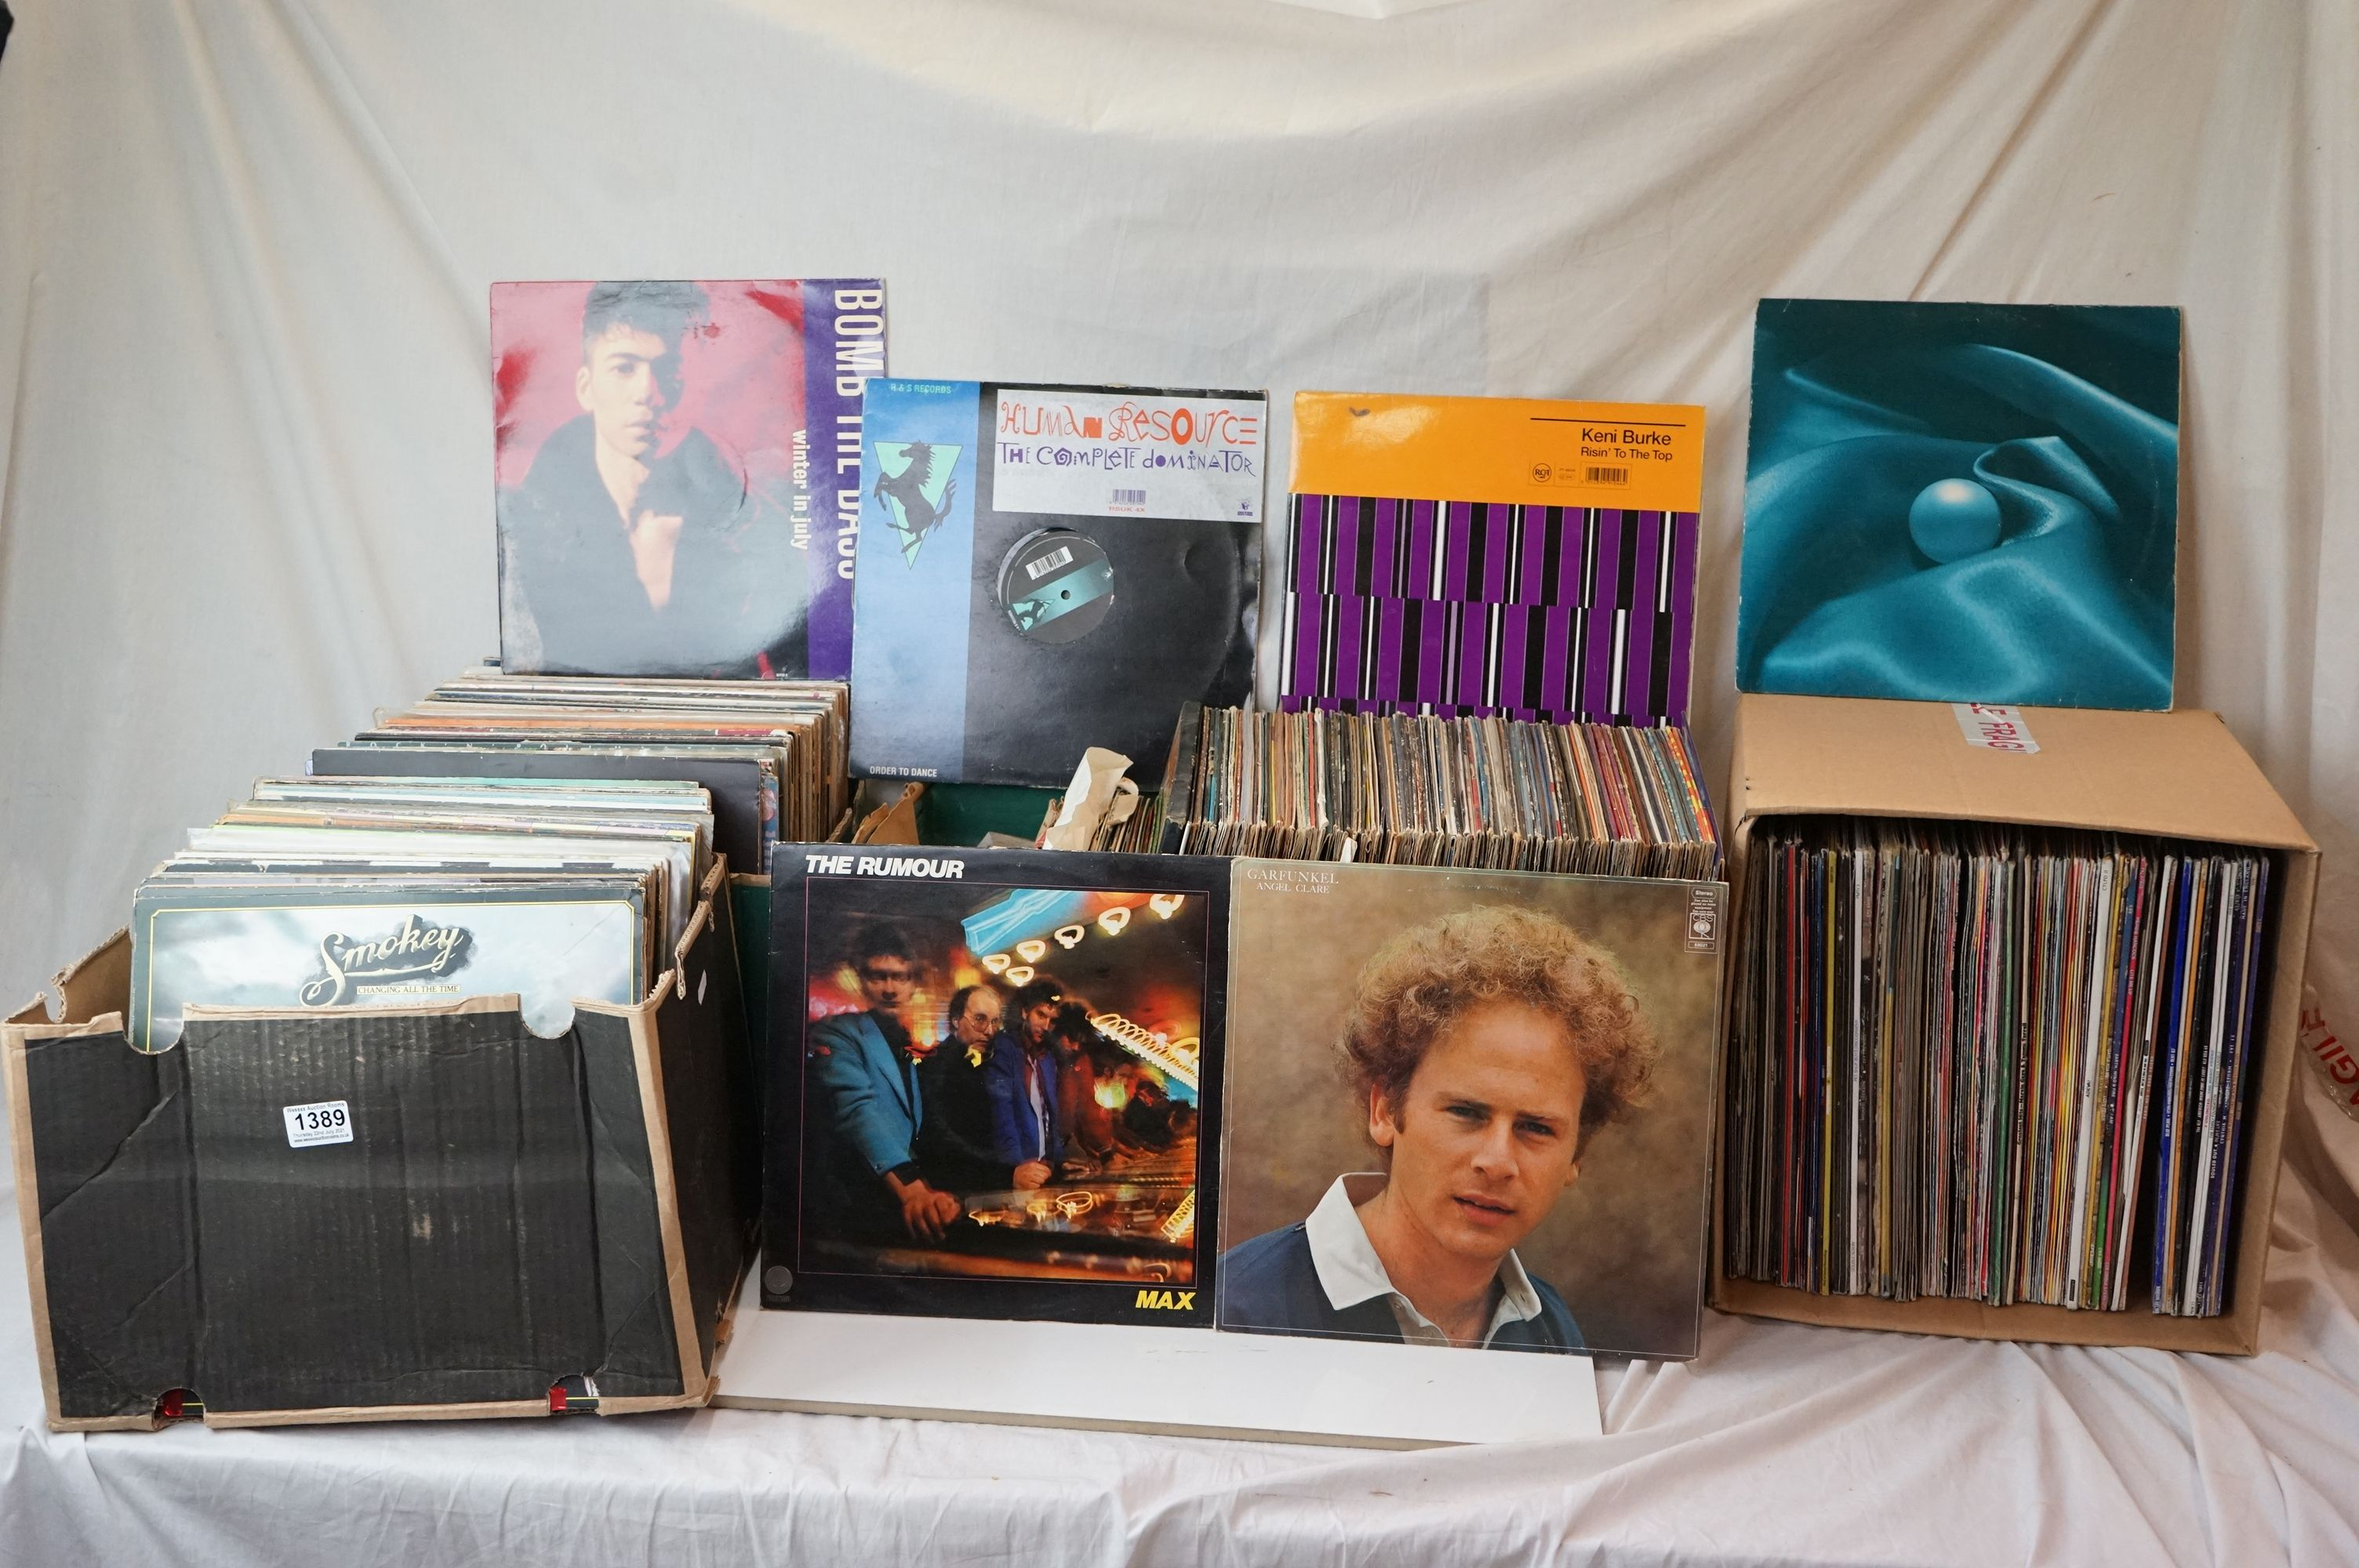 Vinyl - Large collection of LPs spanning the genres and decades (four boxes)